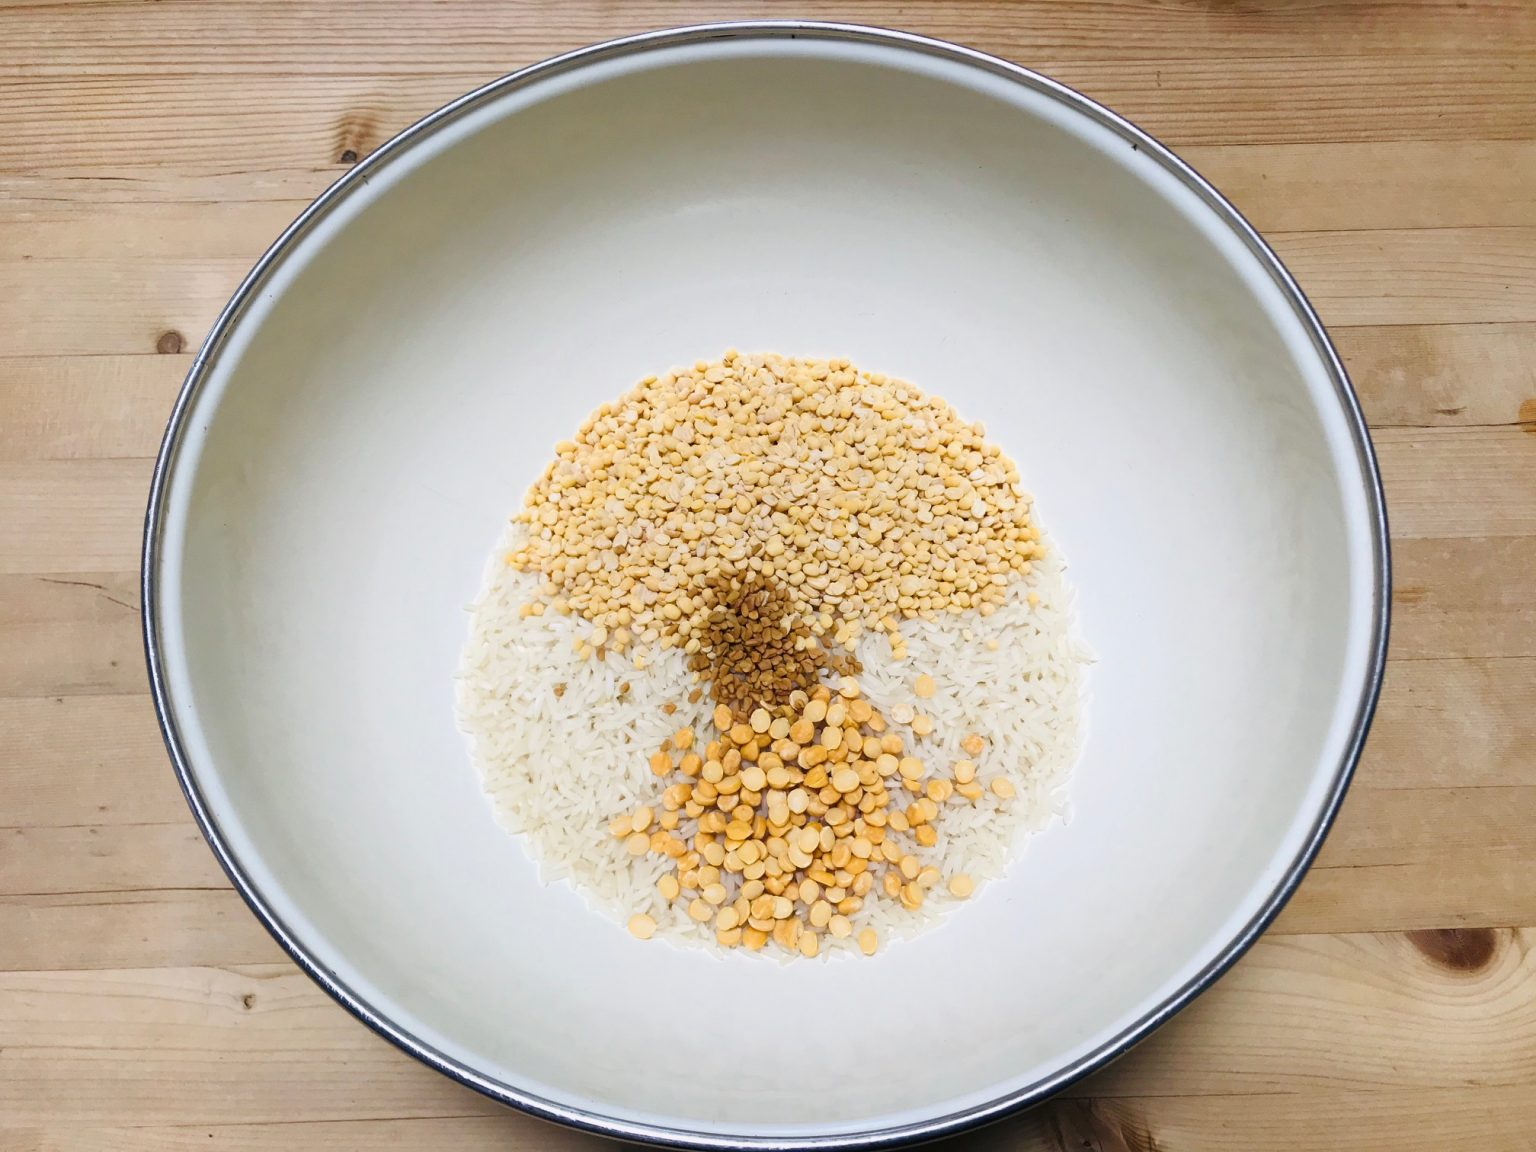 Rice and lentils in bowl to make dosa batter